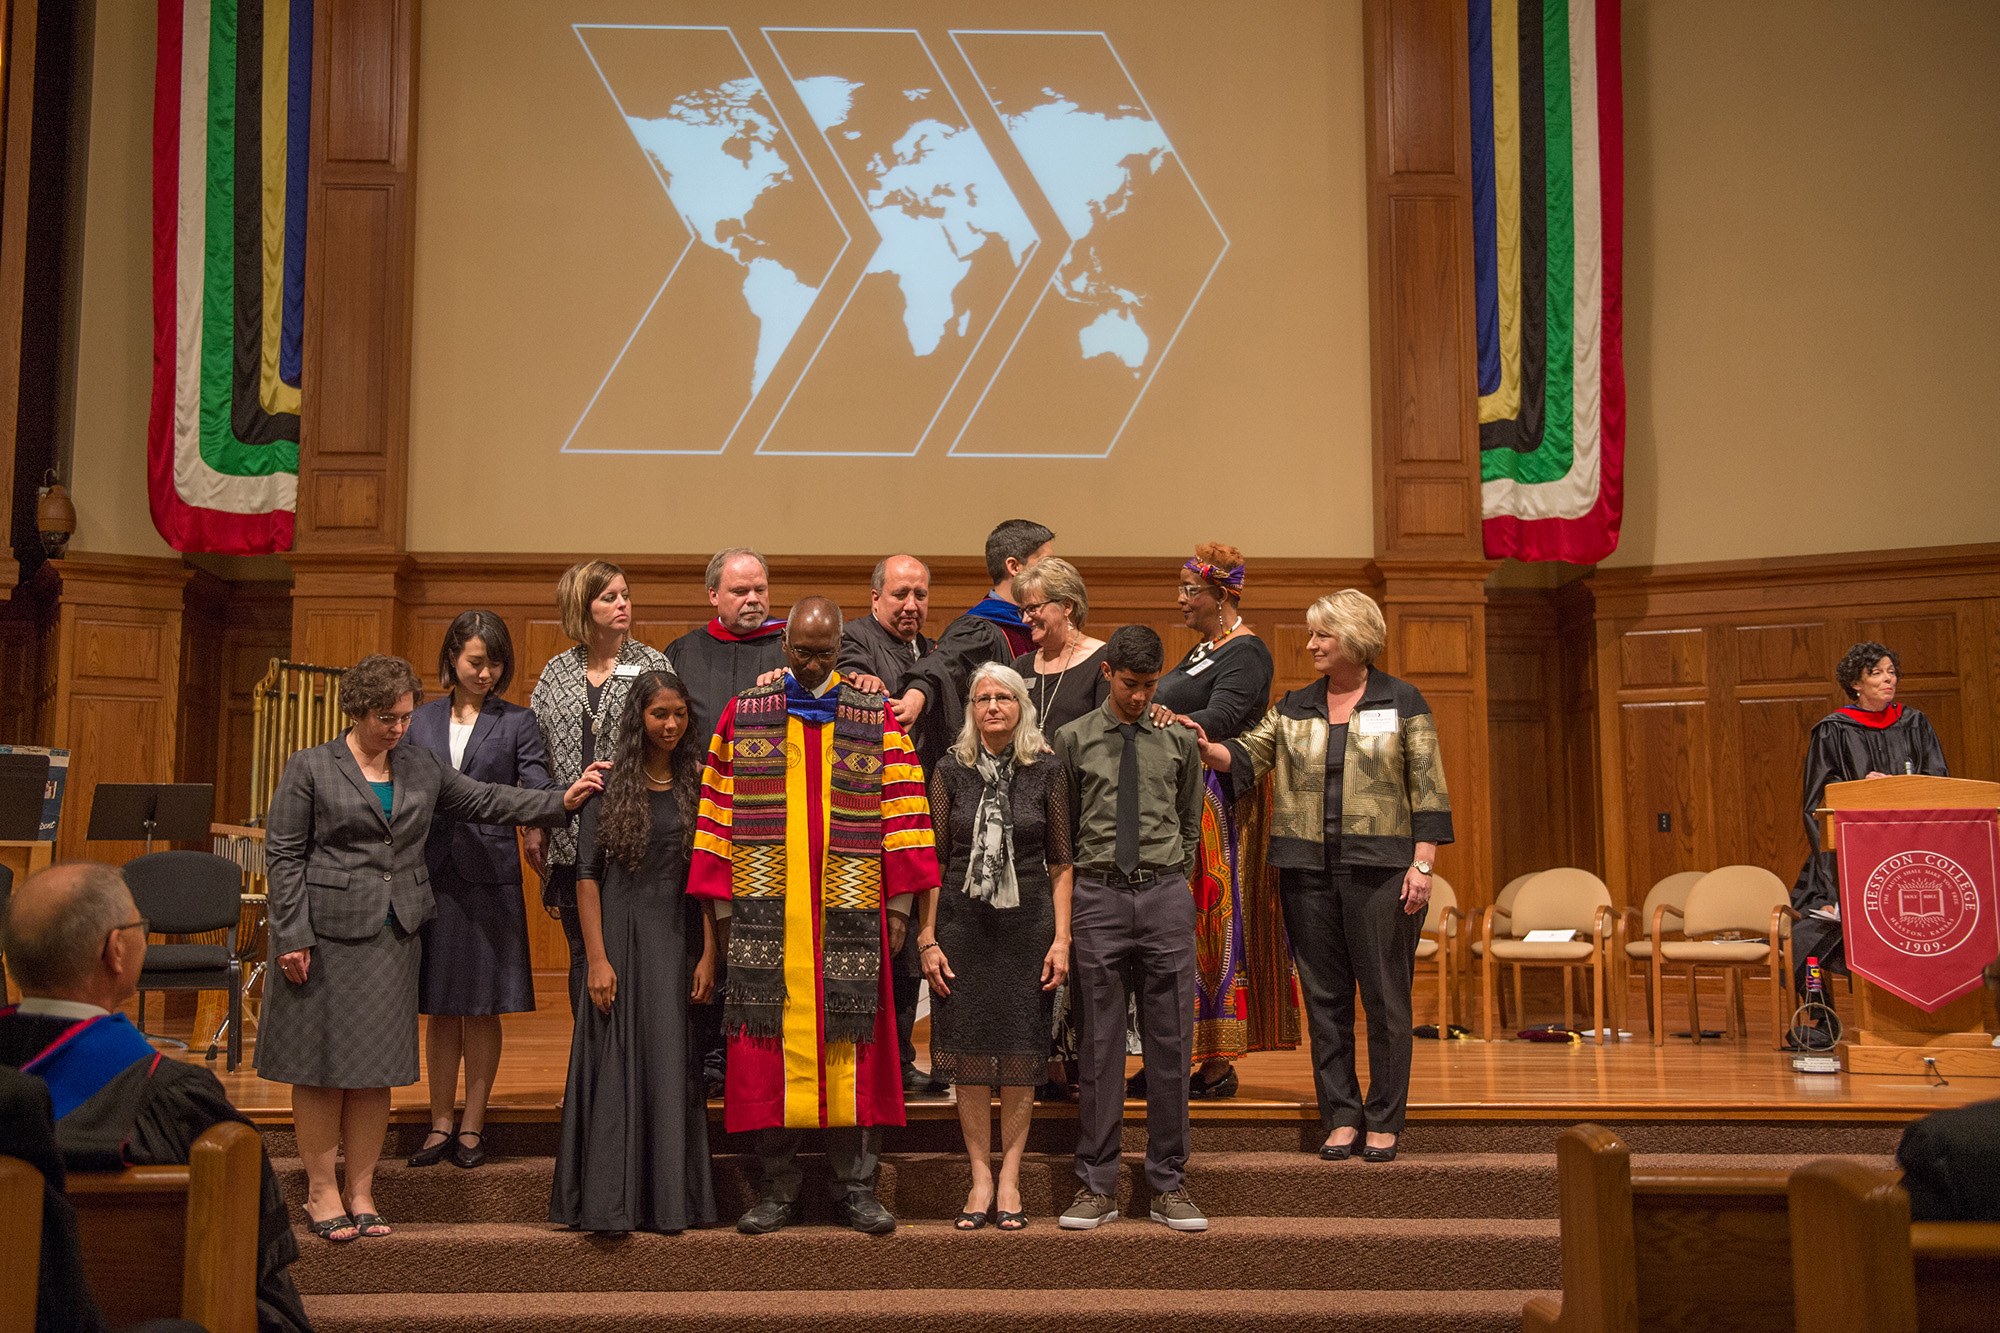 Faculty, staff, students, alumni and representatives of a variety of organizations bless the Manickam family at the close of the inauguration service.